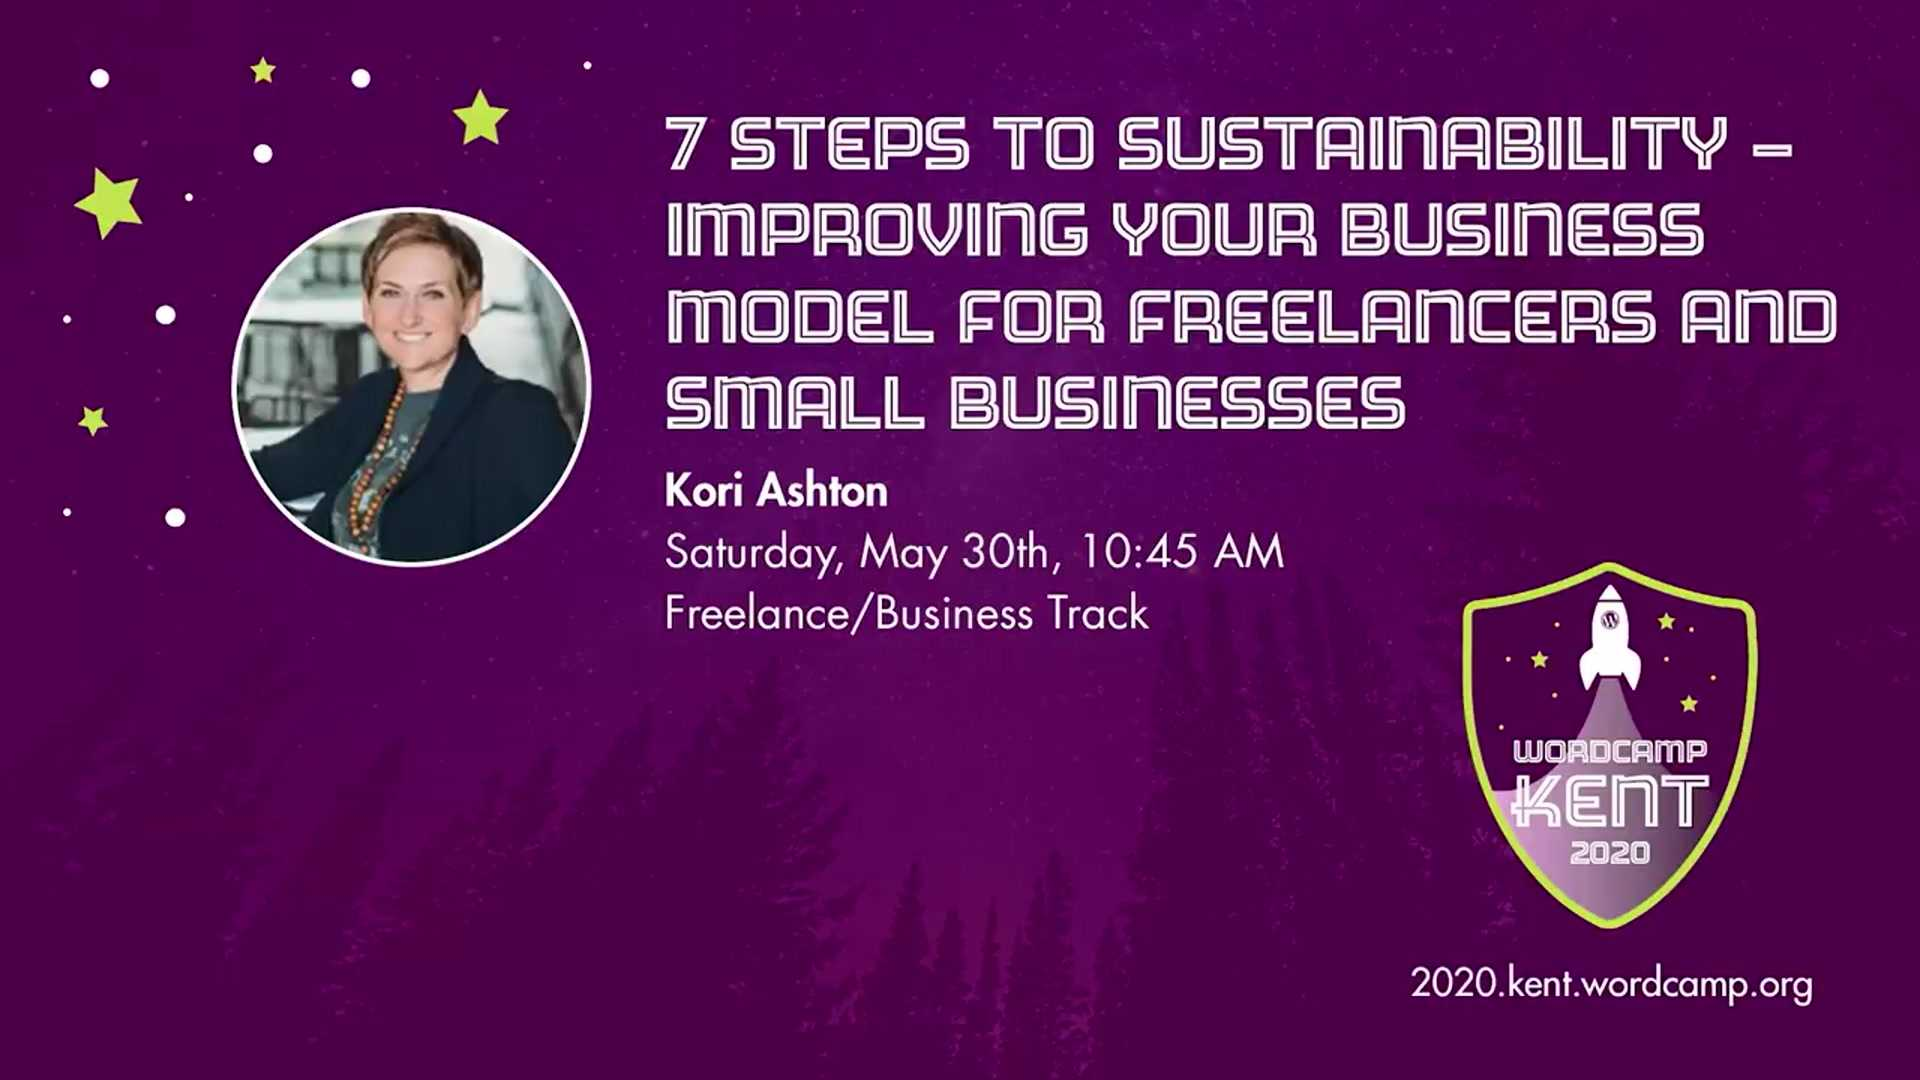 Kori Ashton: Seven Steps to Sustainability - Improving Your Business Model For Freelancers and Small Businesses